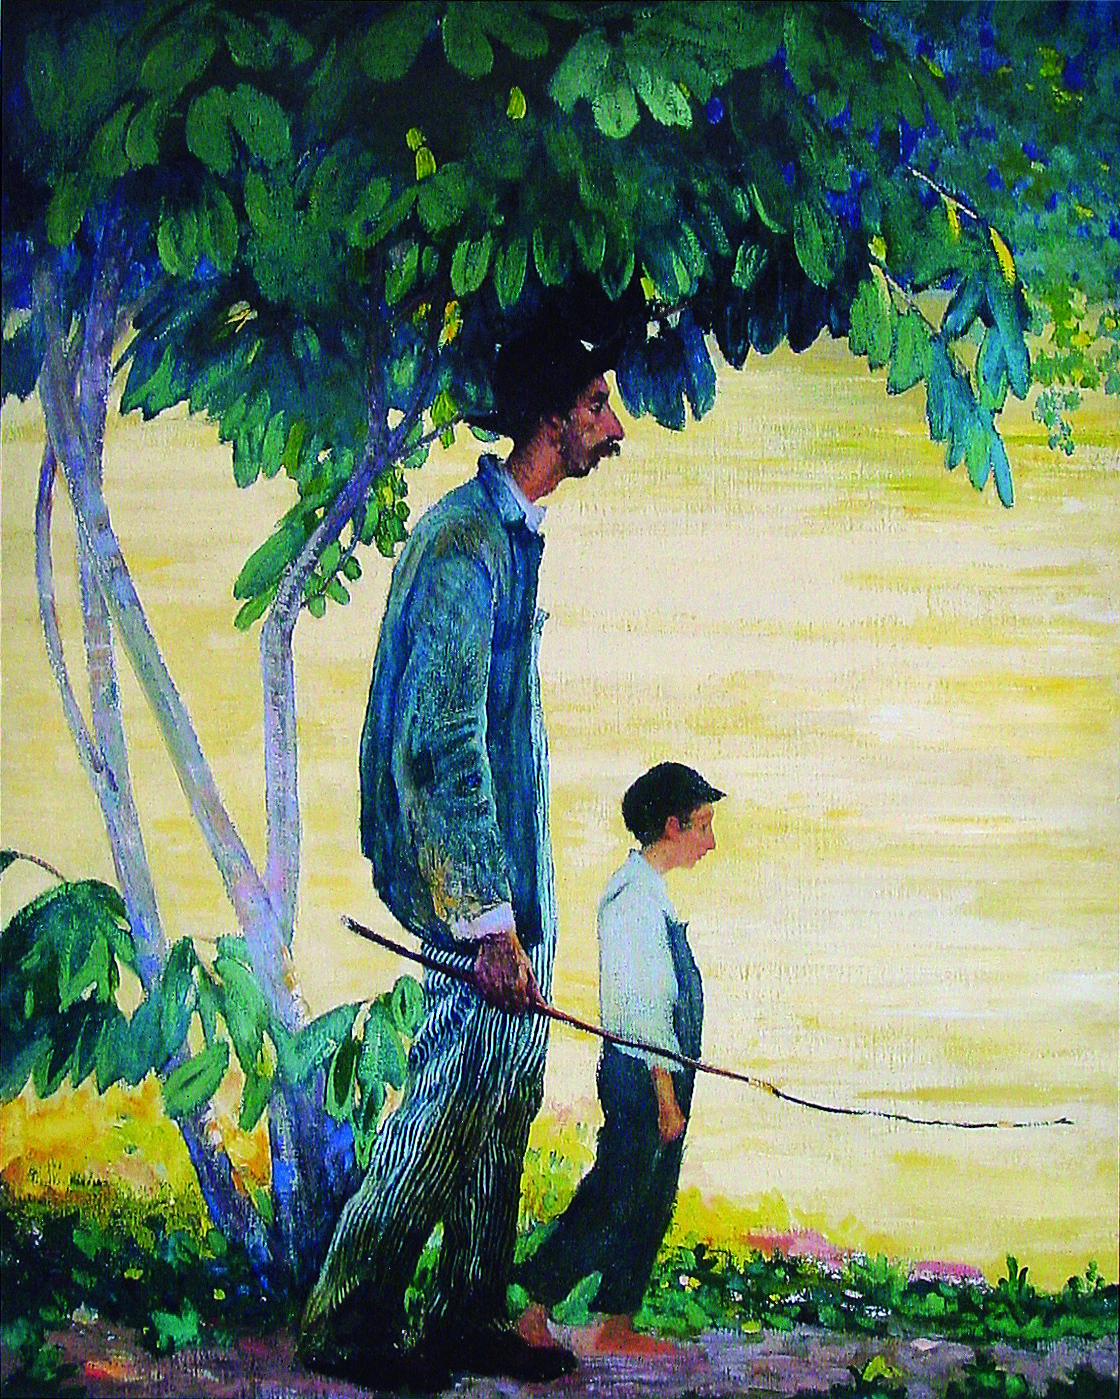 James R. Hopkins | FISHERMAN AND BOY | oil on canvas | 31 x 25-1-2"